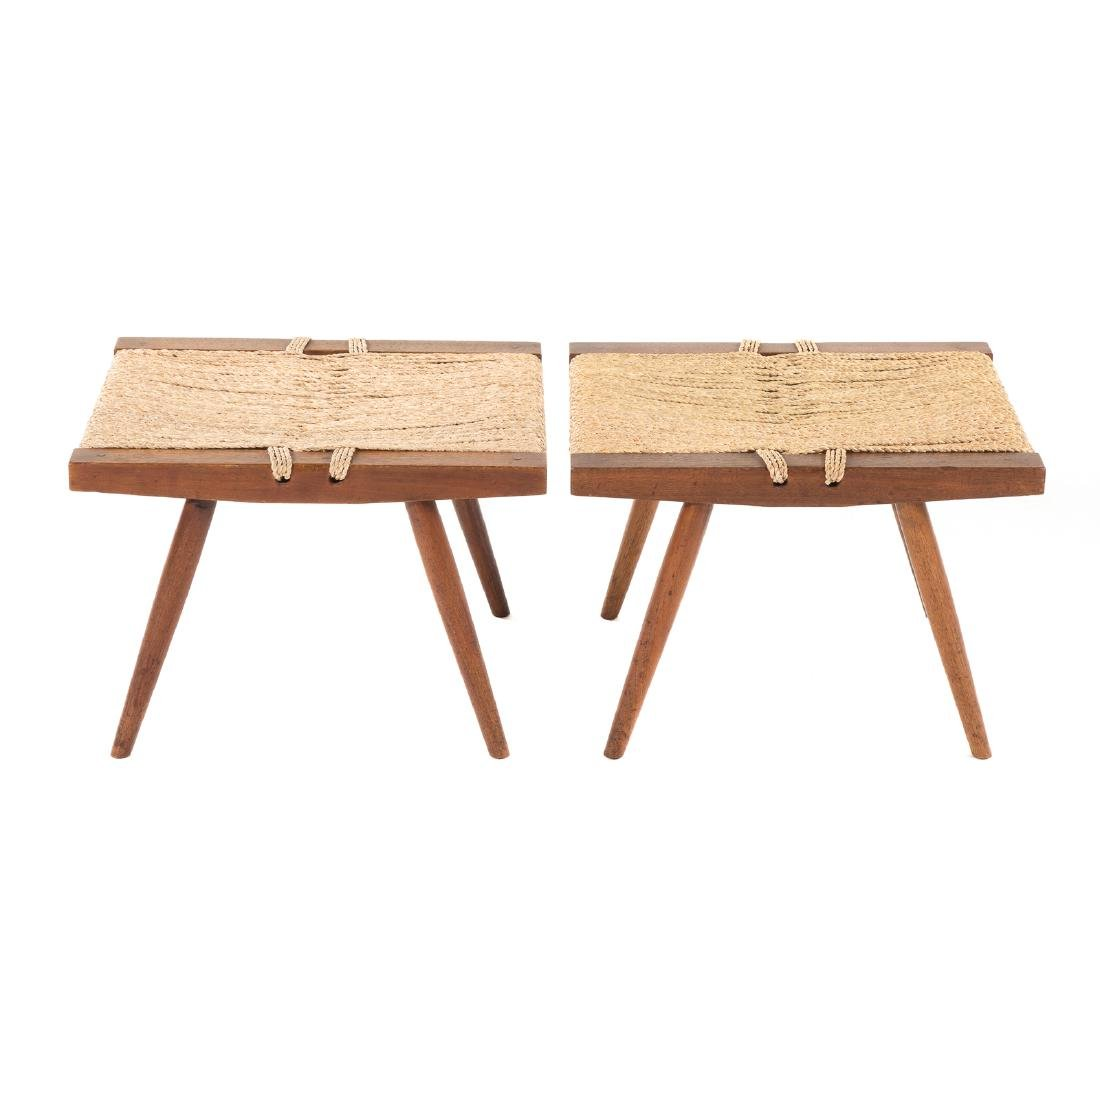 Pair of George Nakashima Grass Seated Stools